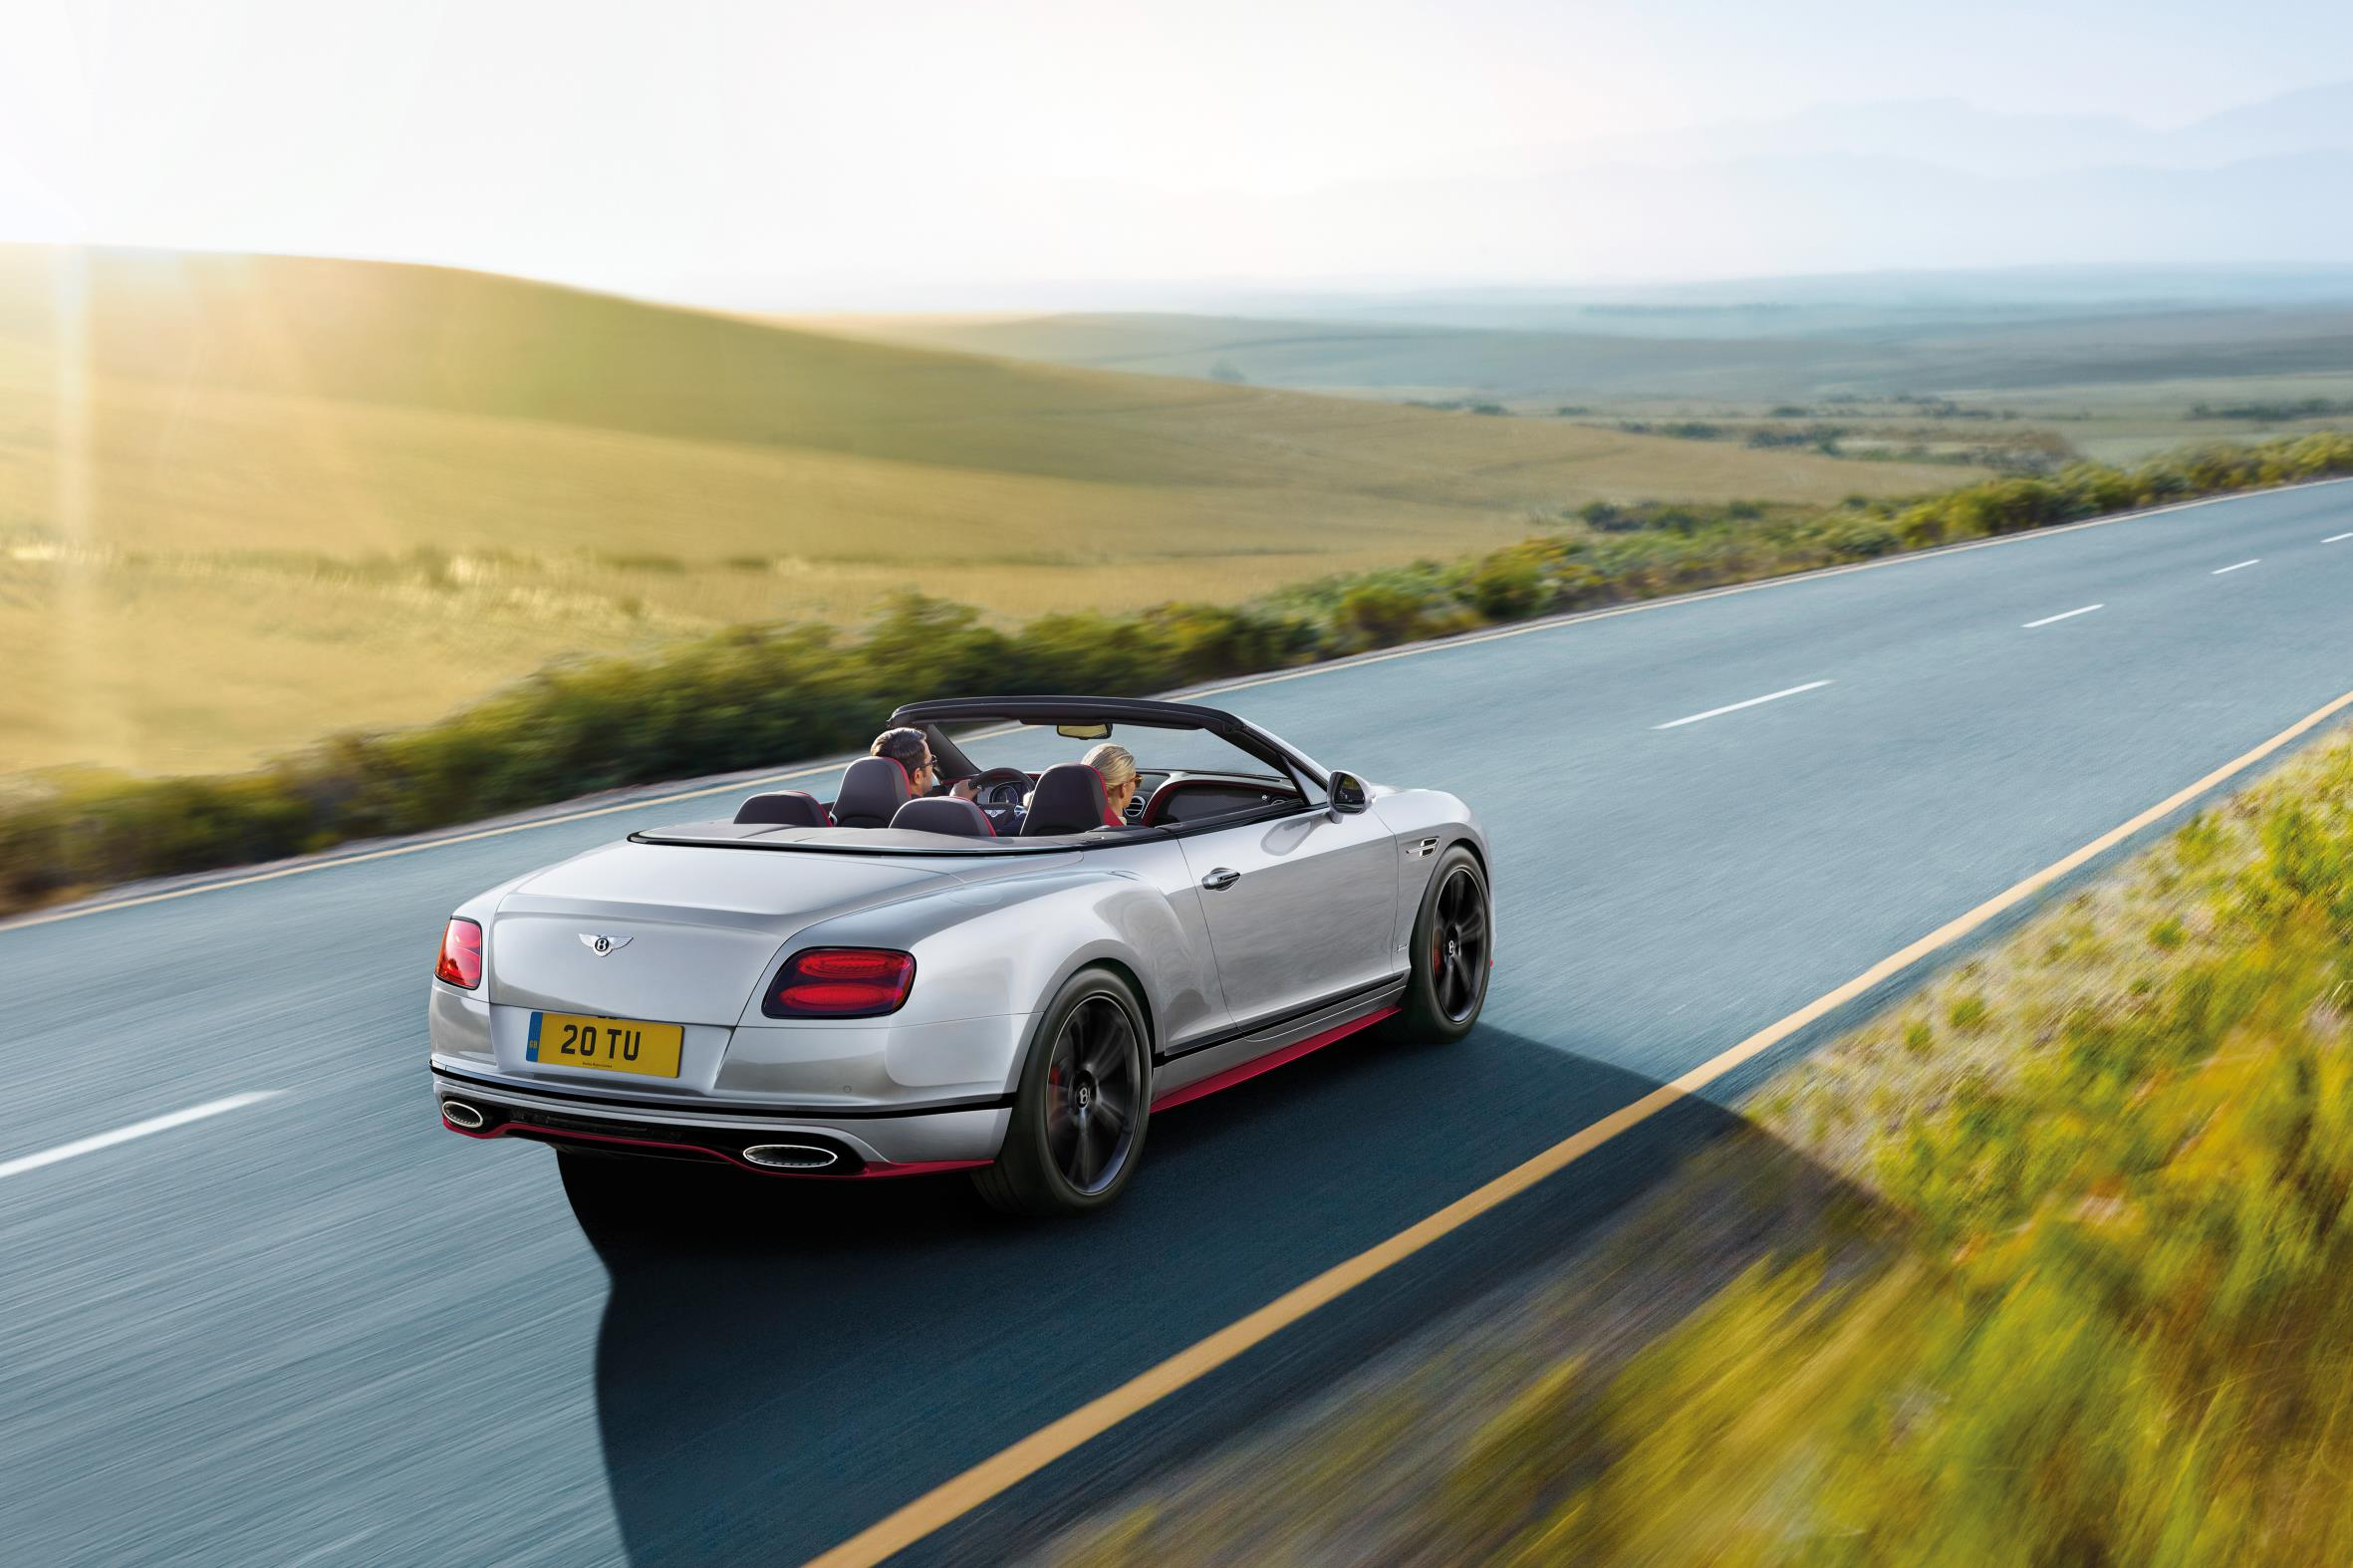 2016 Bentley Continenal GT Speed Black Edition Has 633 HP of Twin ...